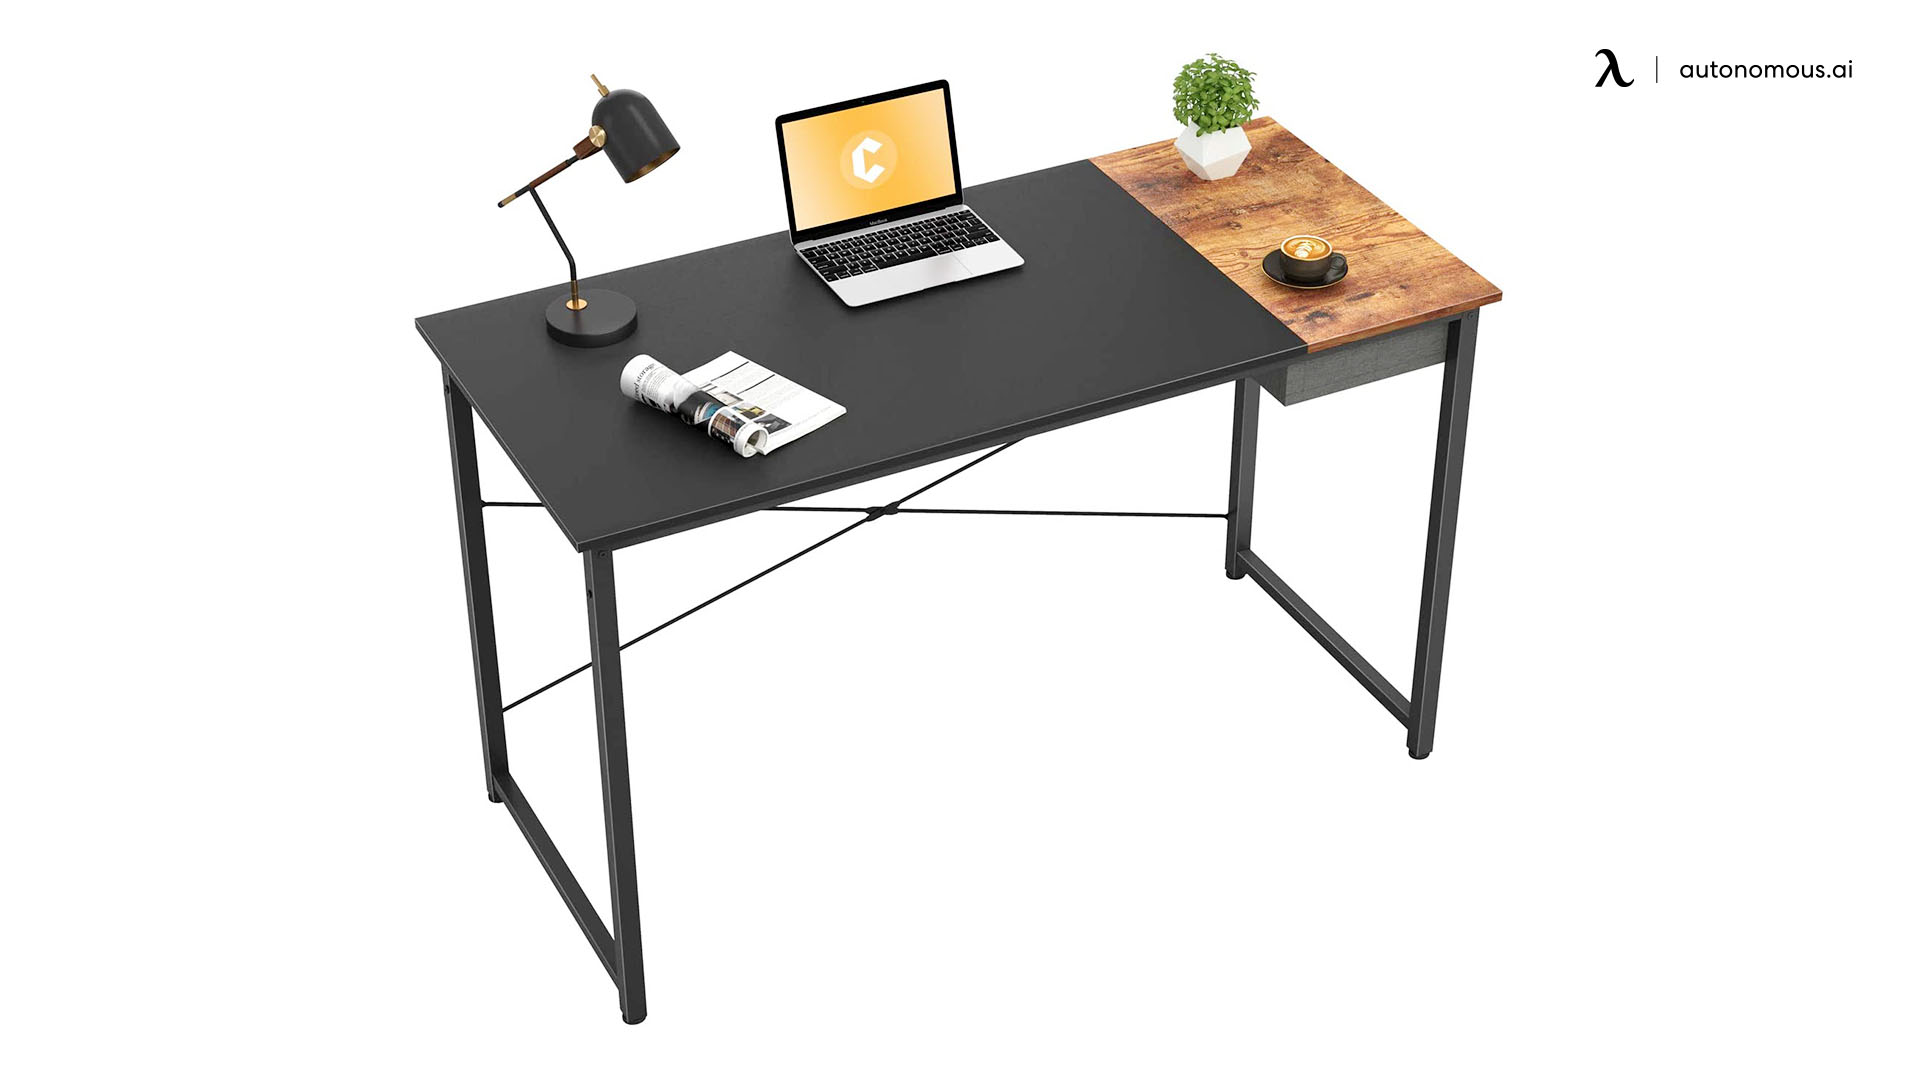 Cubiker's Small Home Office Desk